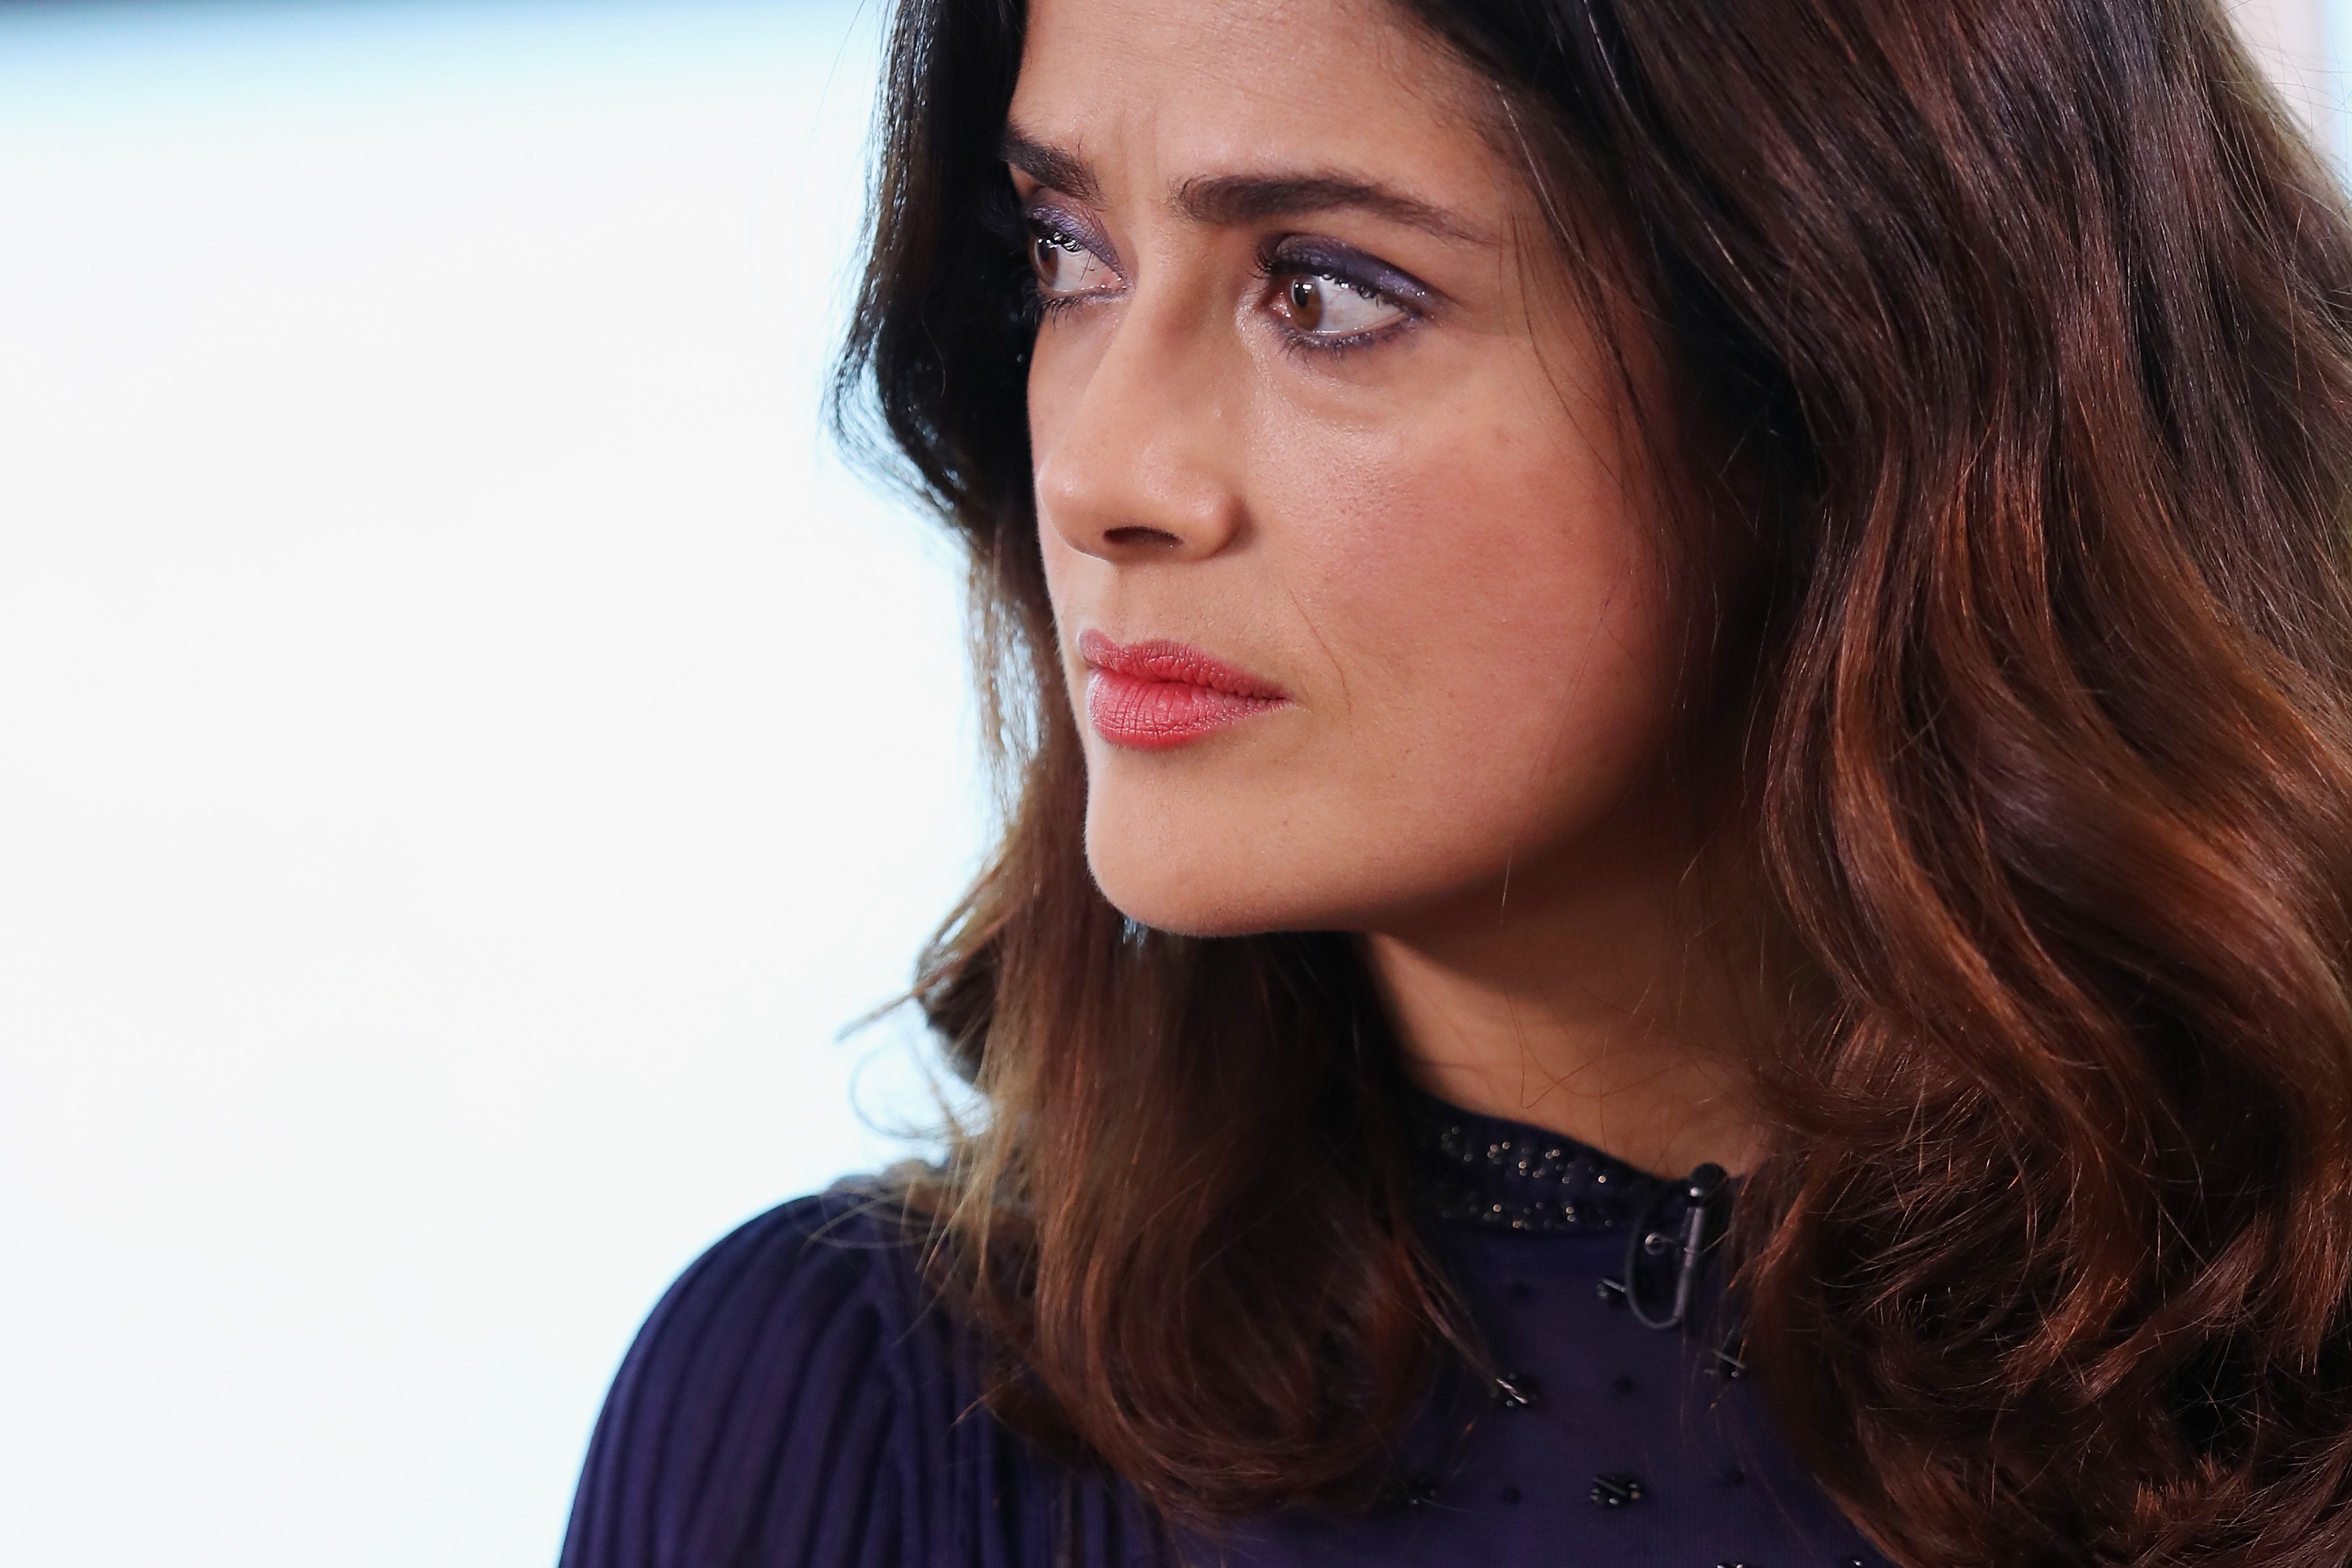 Salma Hayek Details Horrifying Sexual and Verbal Abuse by Harvey Weinstein in NYT Op-Ed